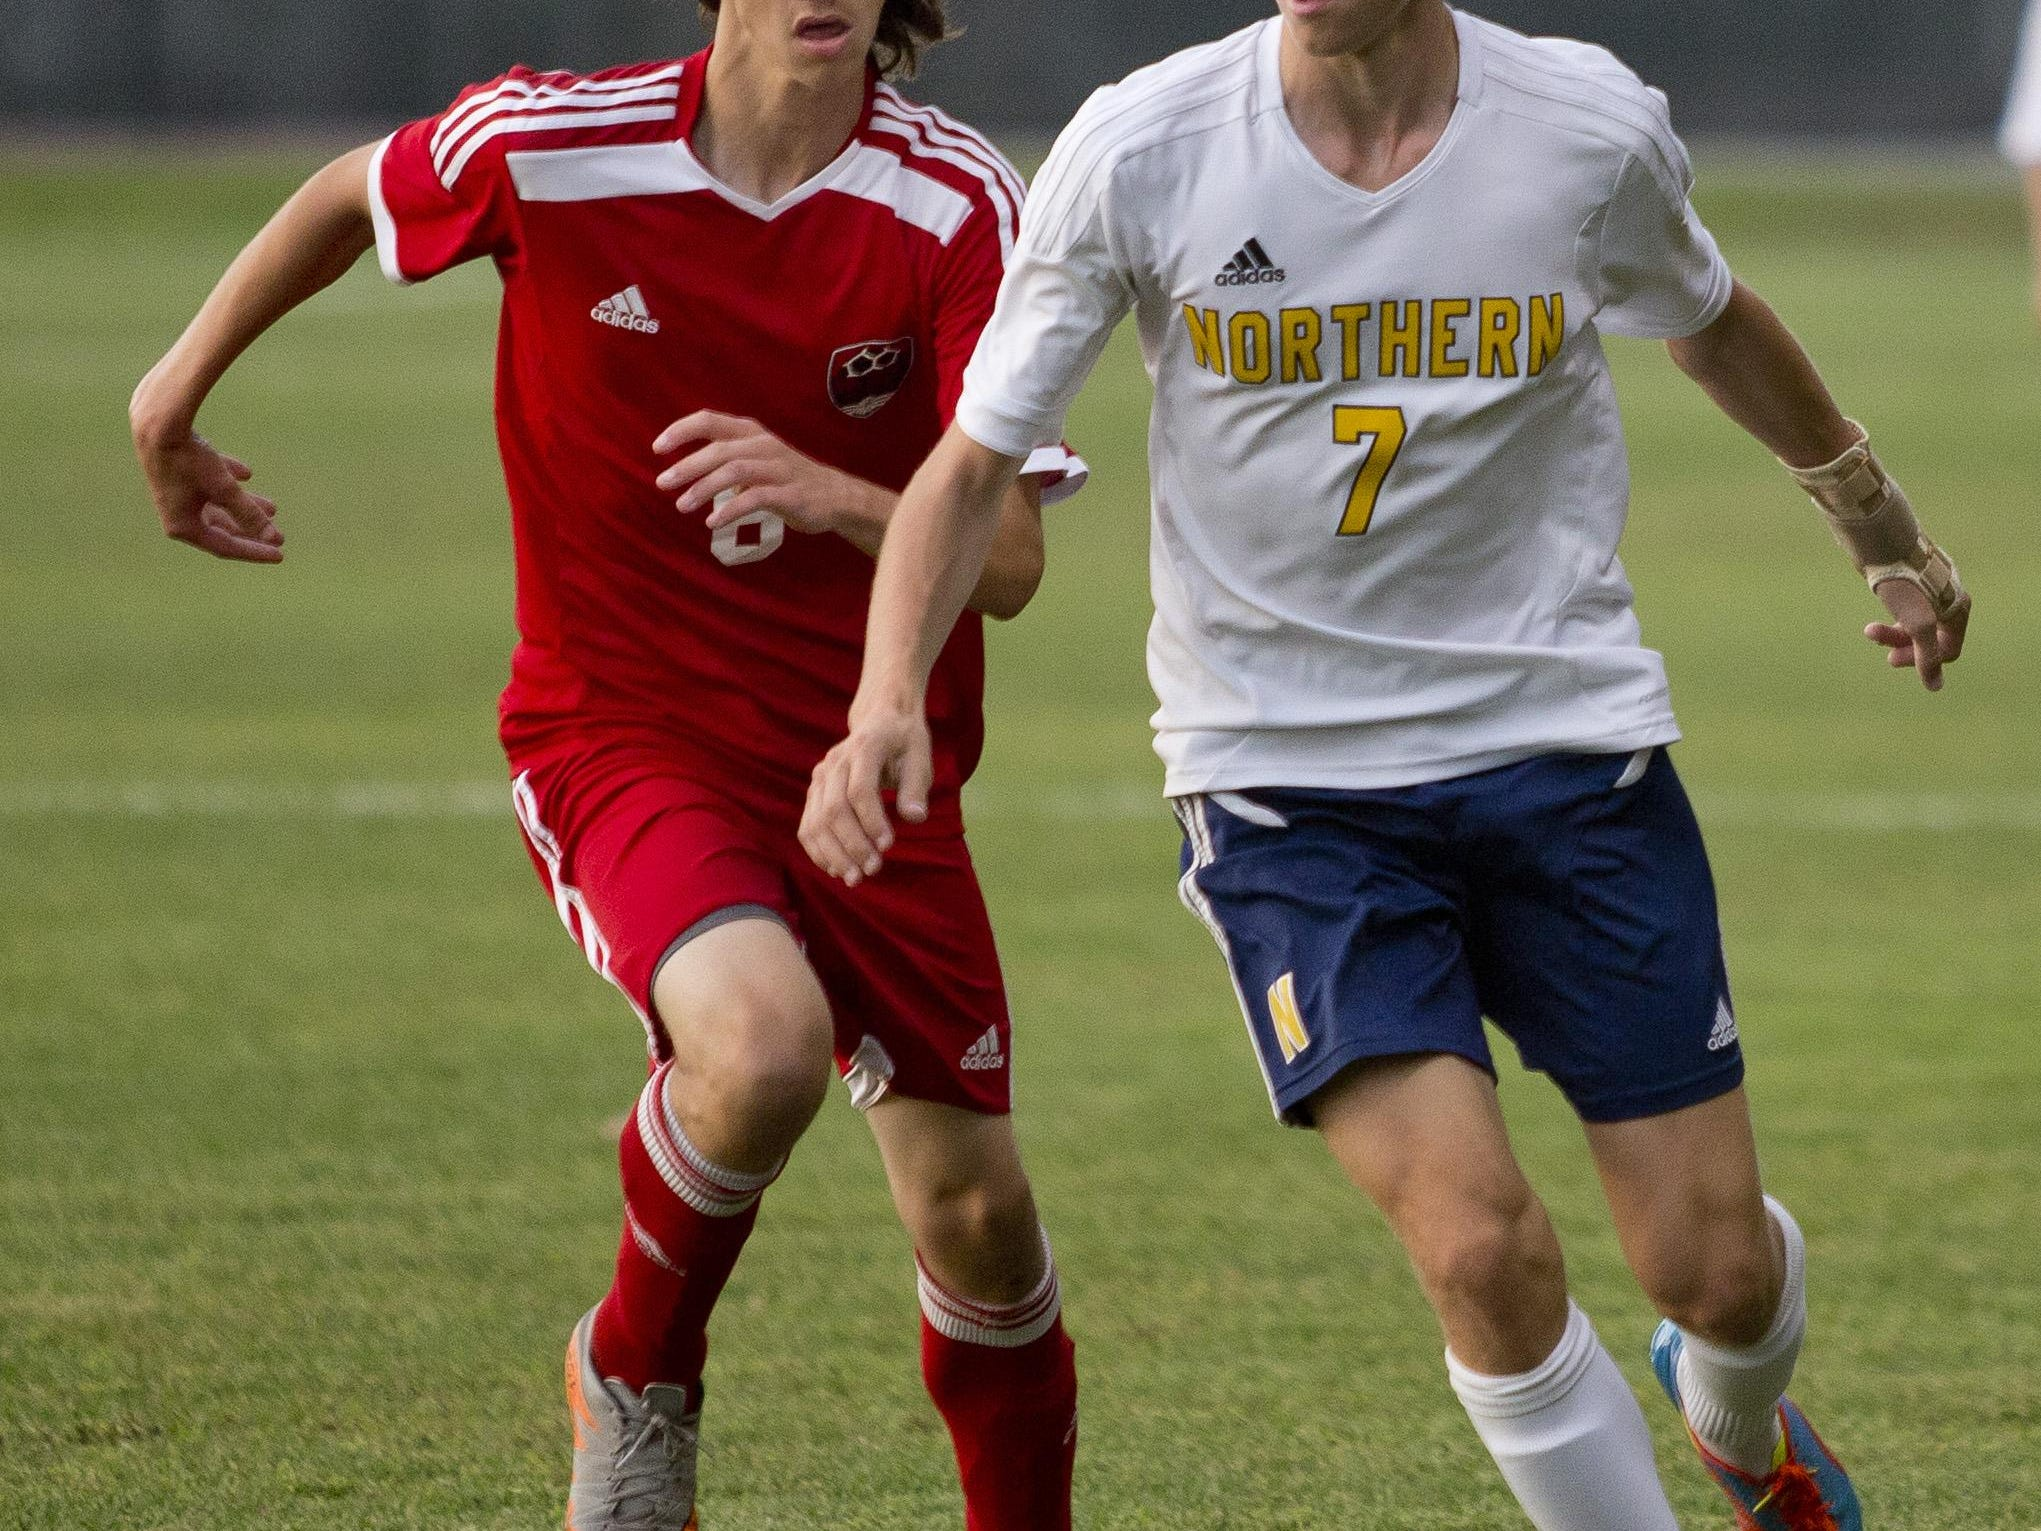 Port Huron Northern junior James Robertson works the ball in front of Port Huron senior Zach Bowen during a soccer game Thursday, September 24, 2015 at Port Huron Northern High School.